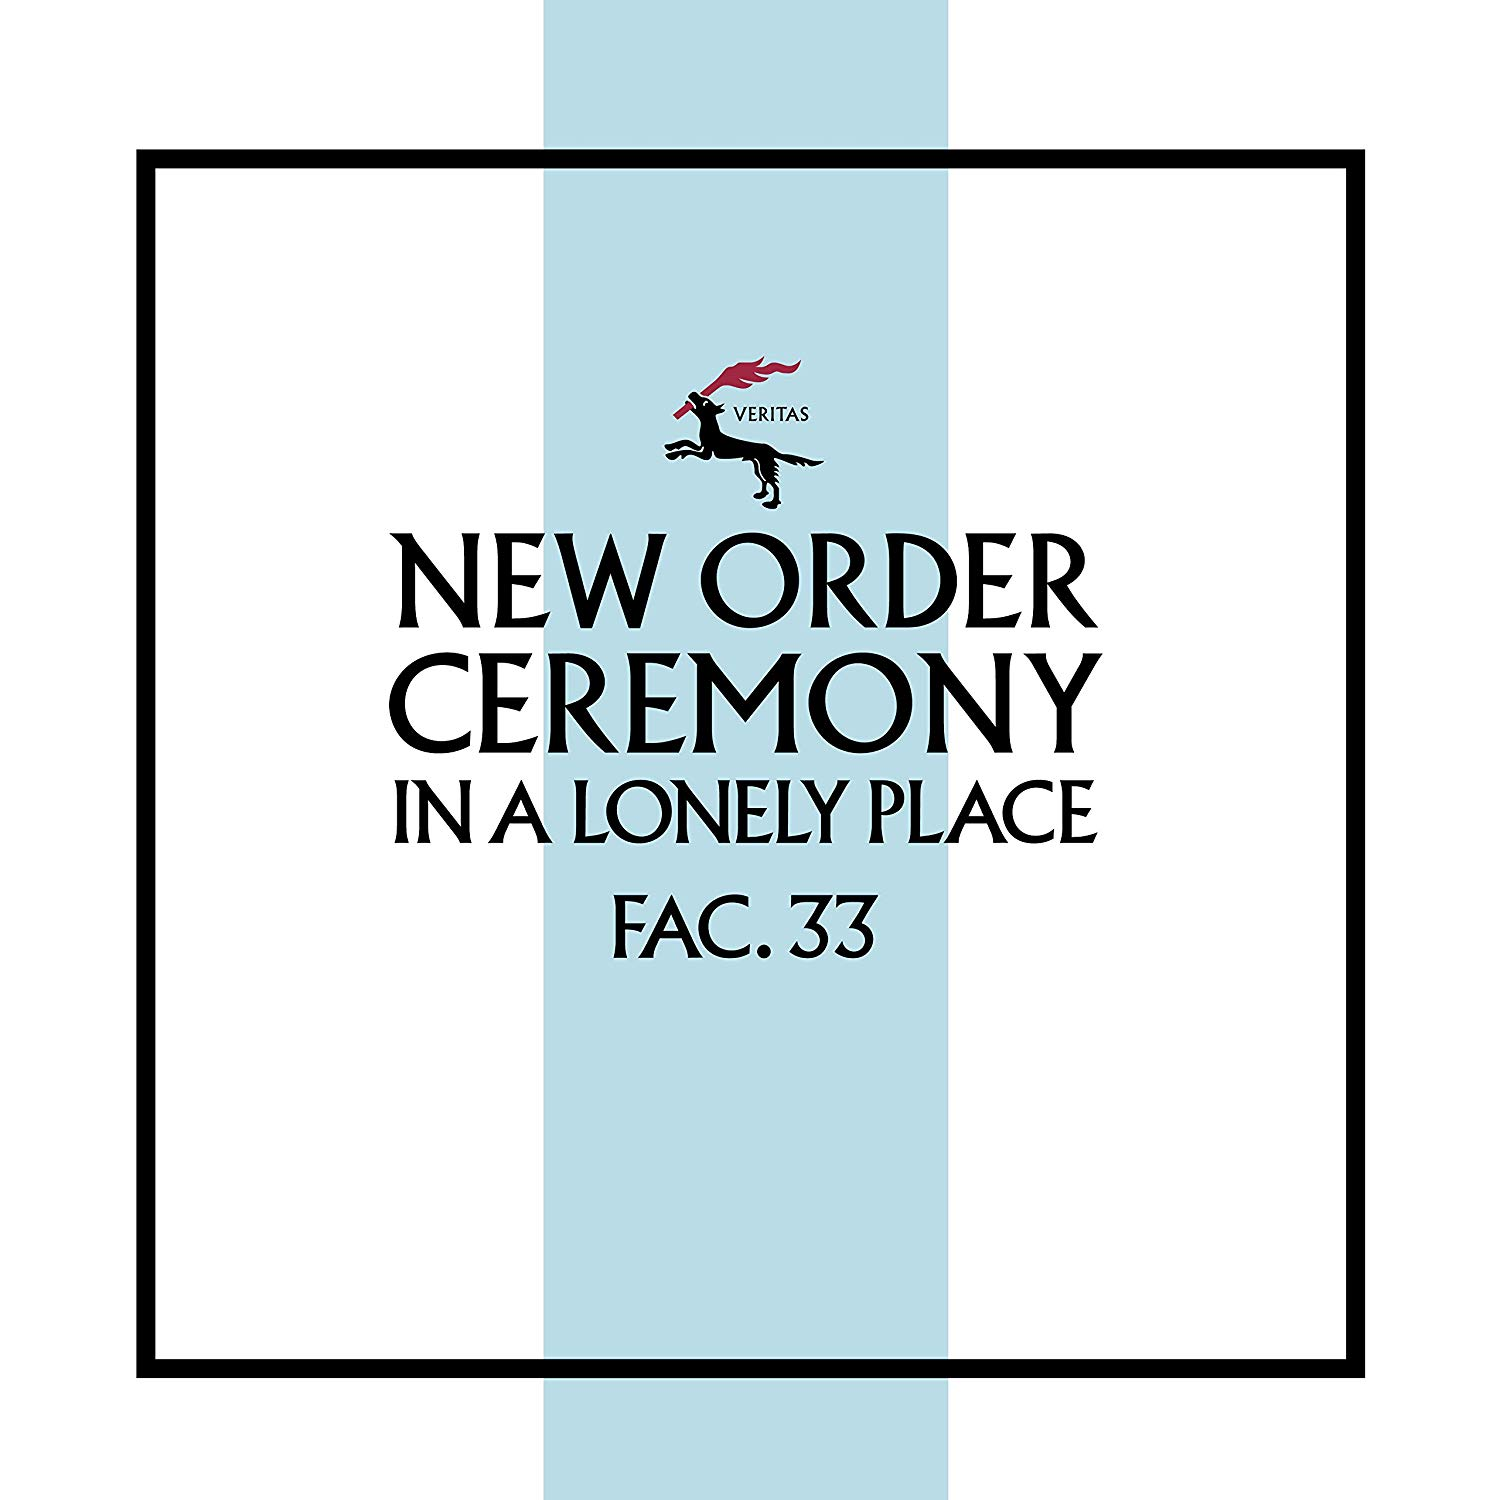 New Order - Ceremony Version 2 Single